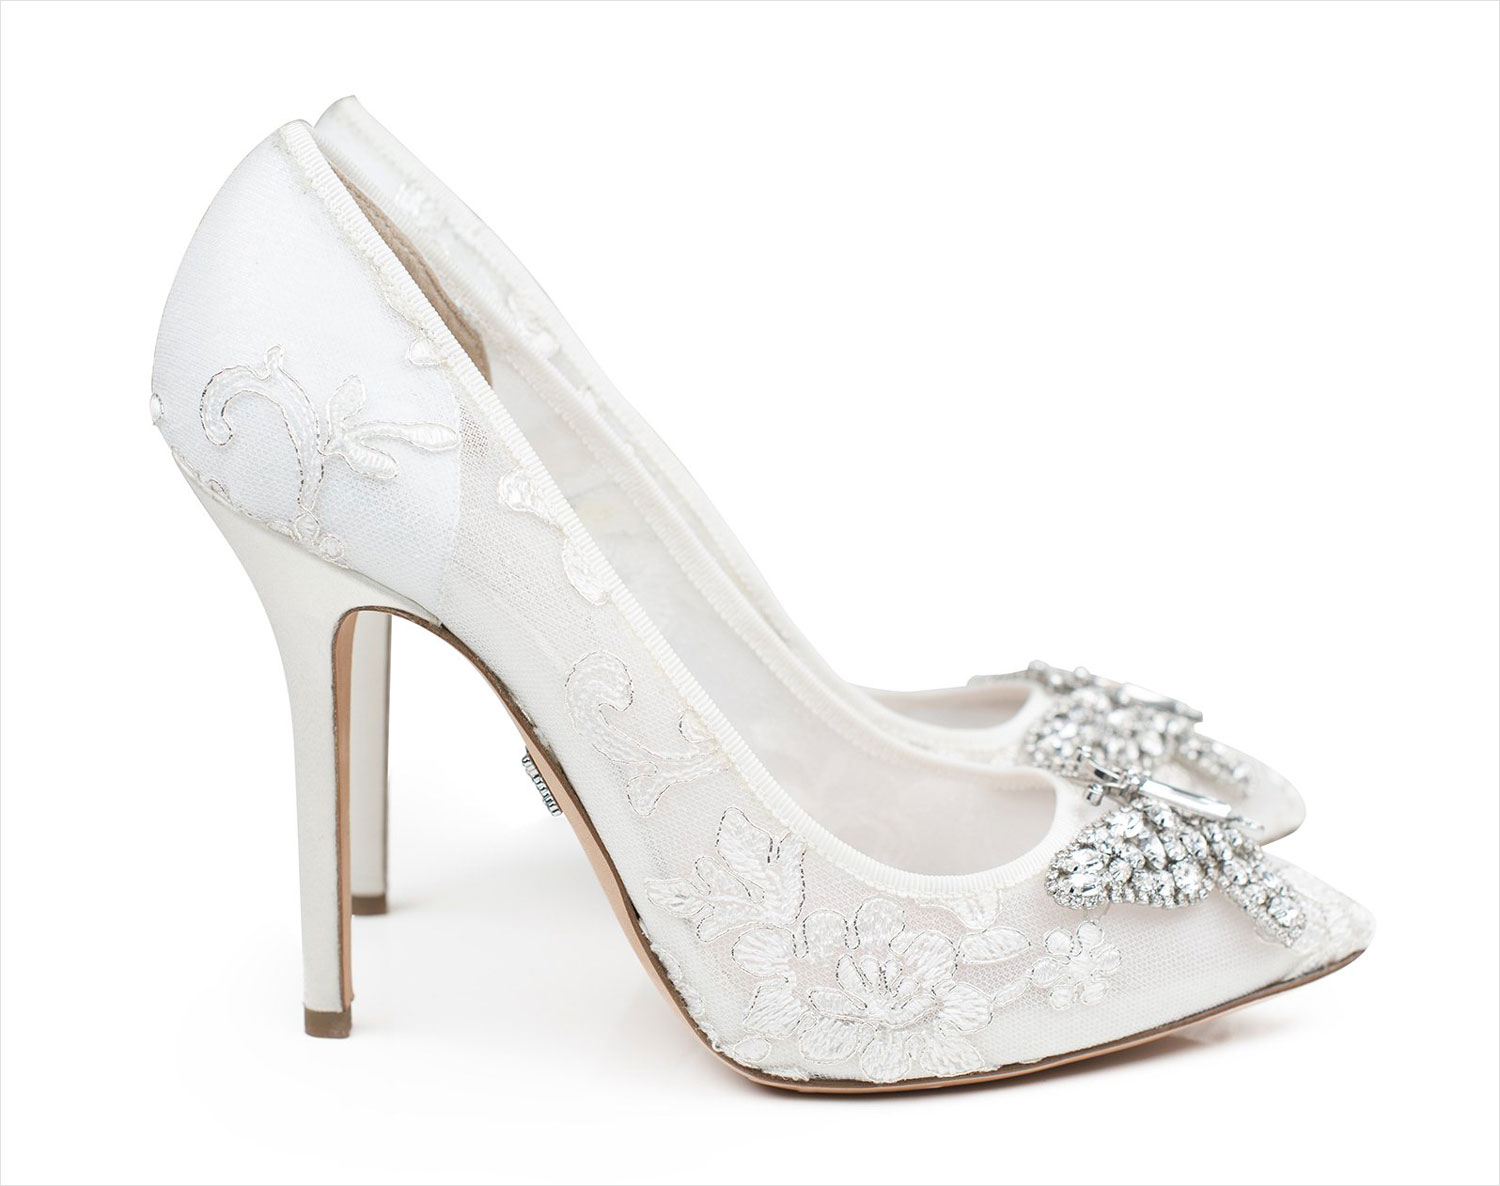 4a056a01fc7 Aruna Seth Farfalla ivory lace pointed toe pump white wedding shoes heels ·  ""